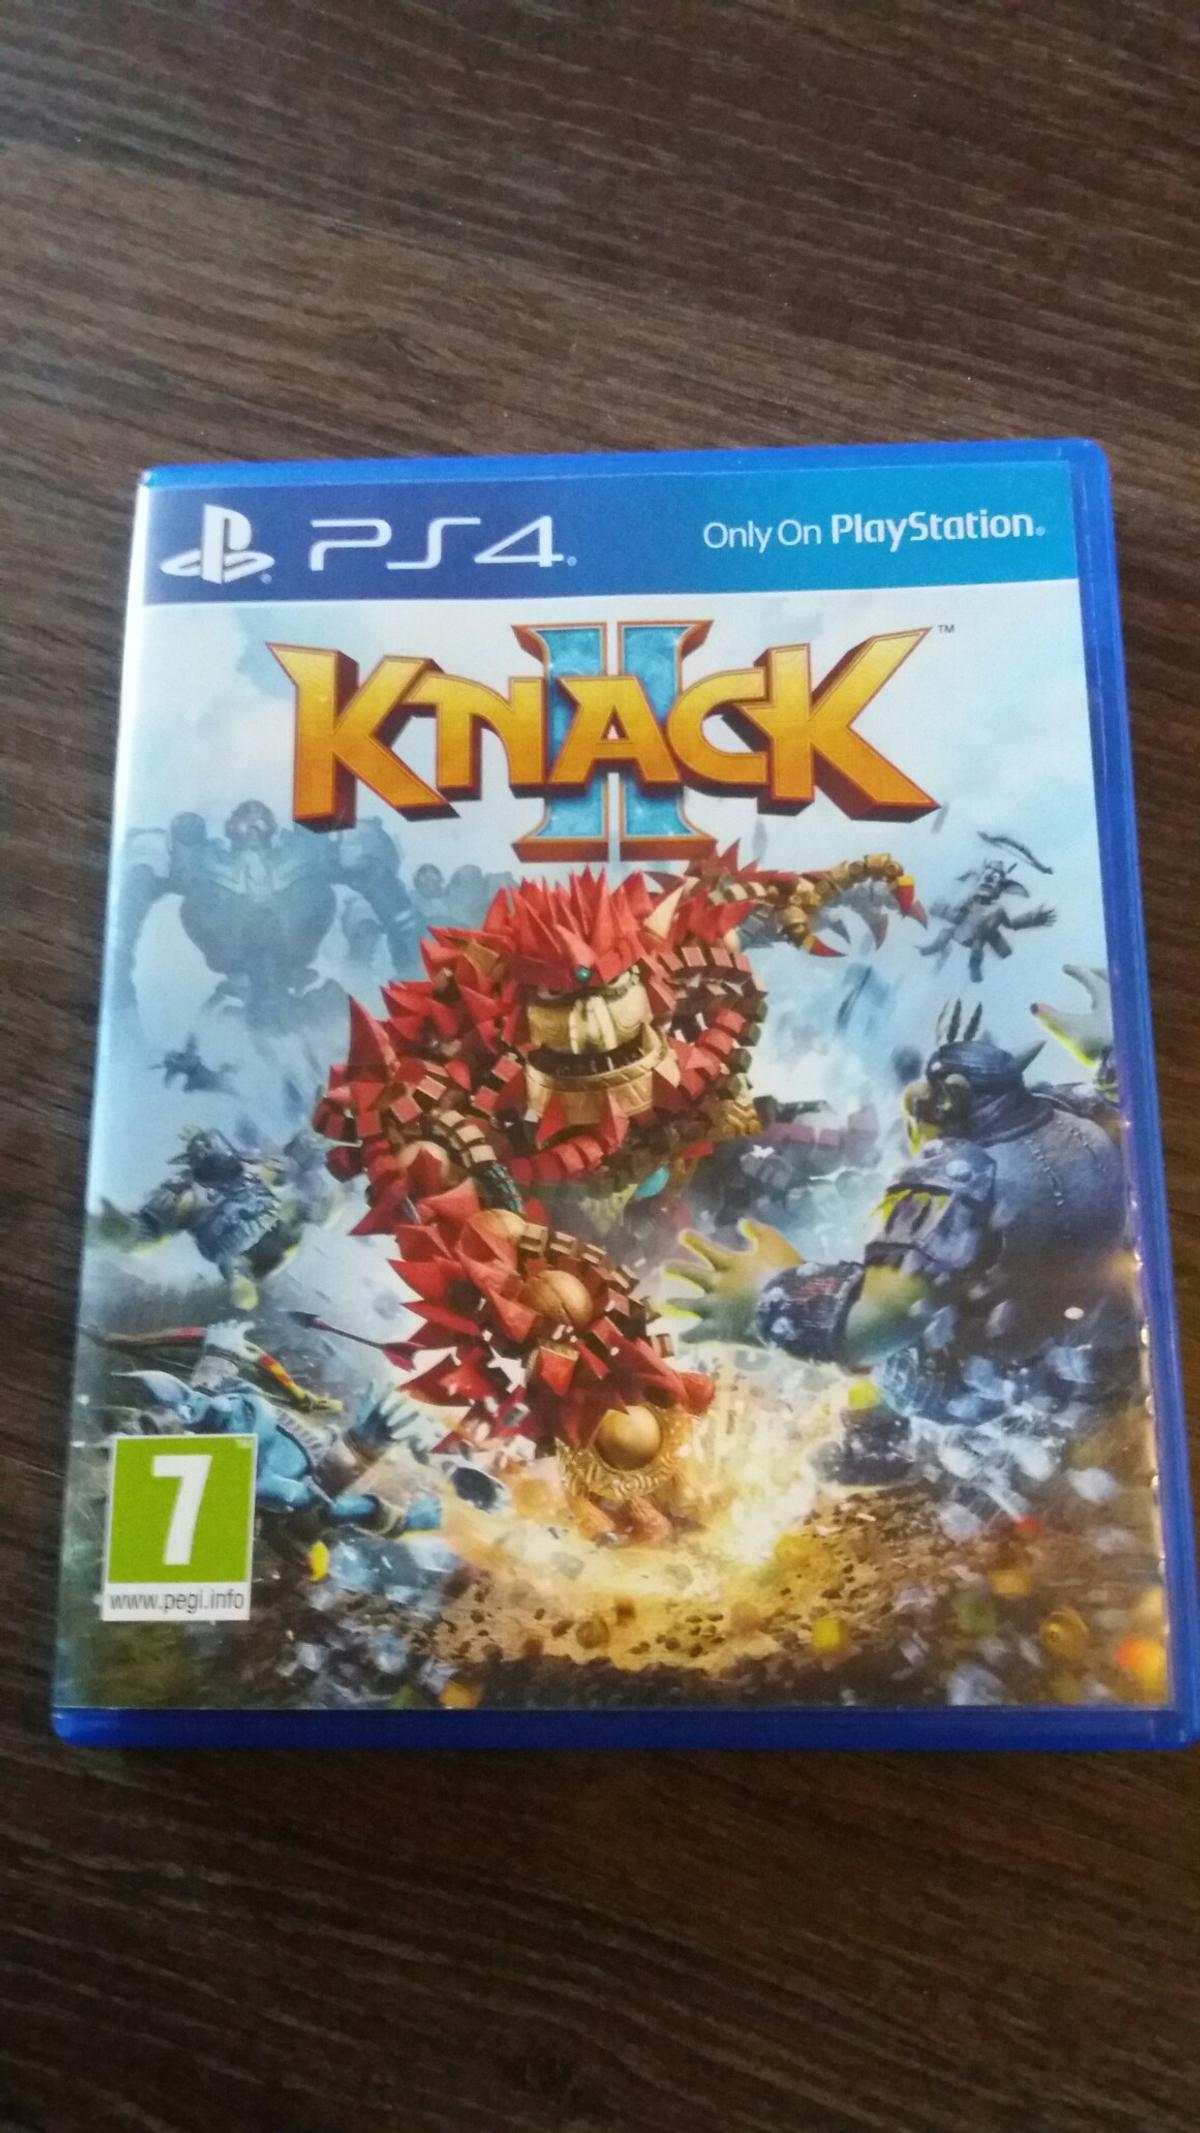 Sony Knack 2 PS4 Includes That's You game